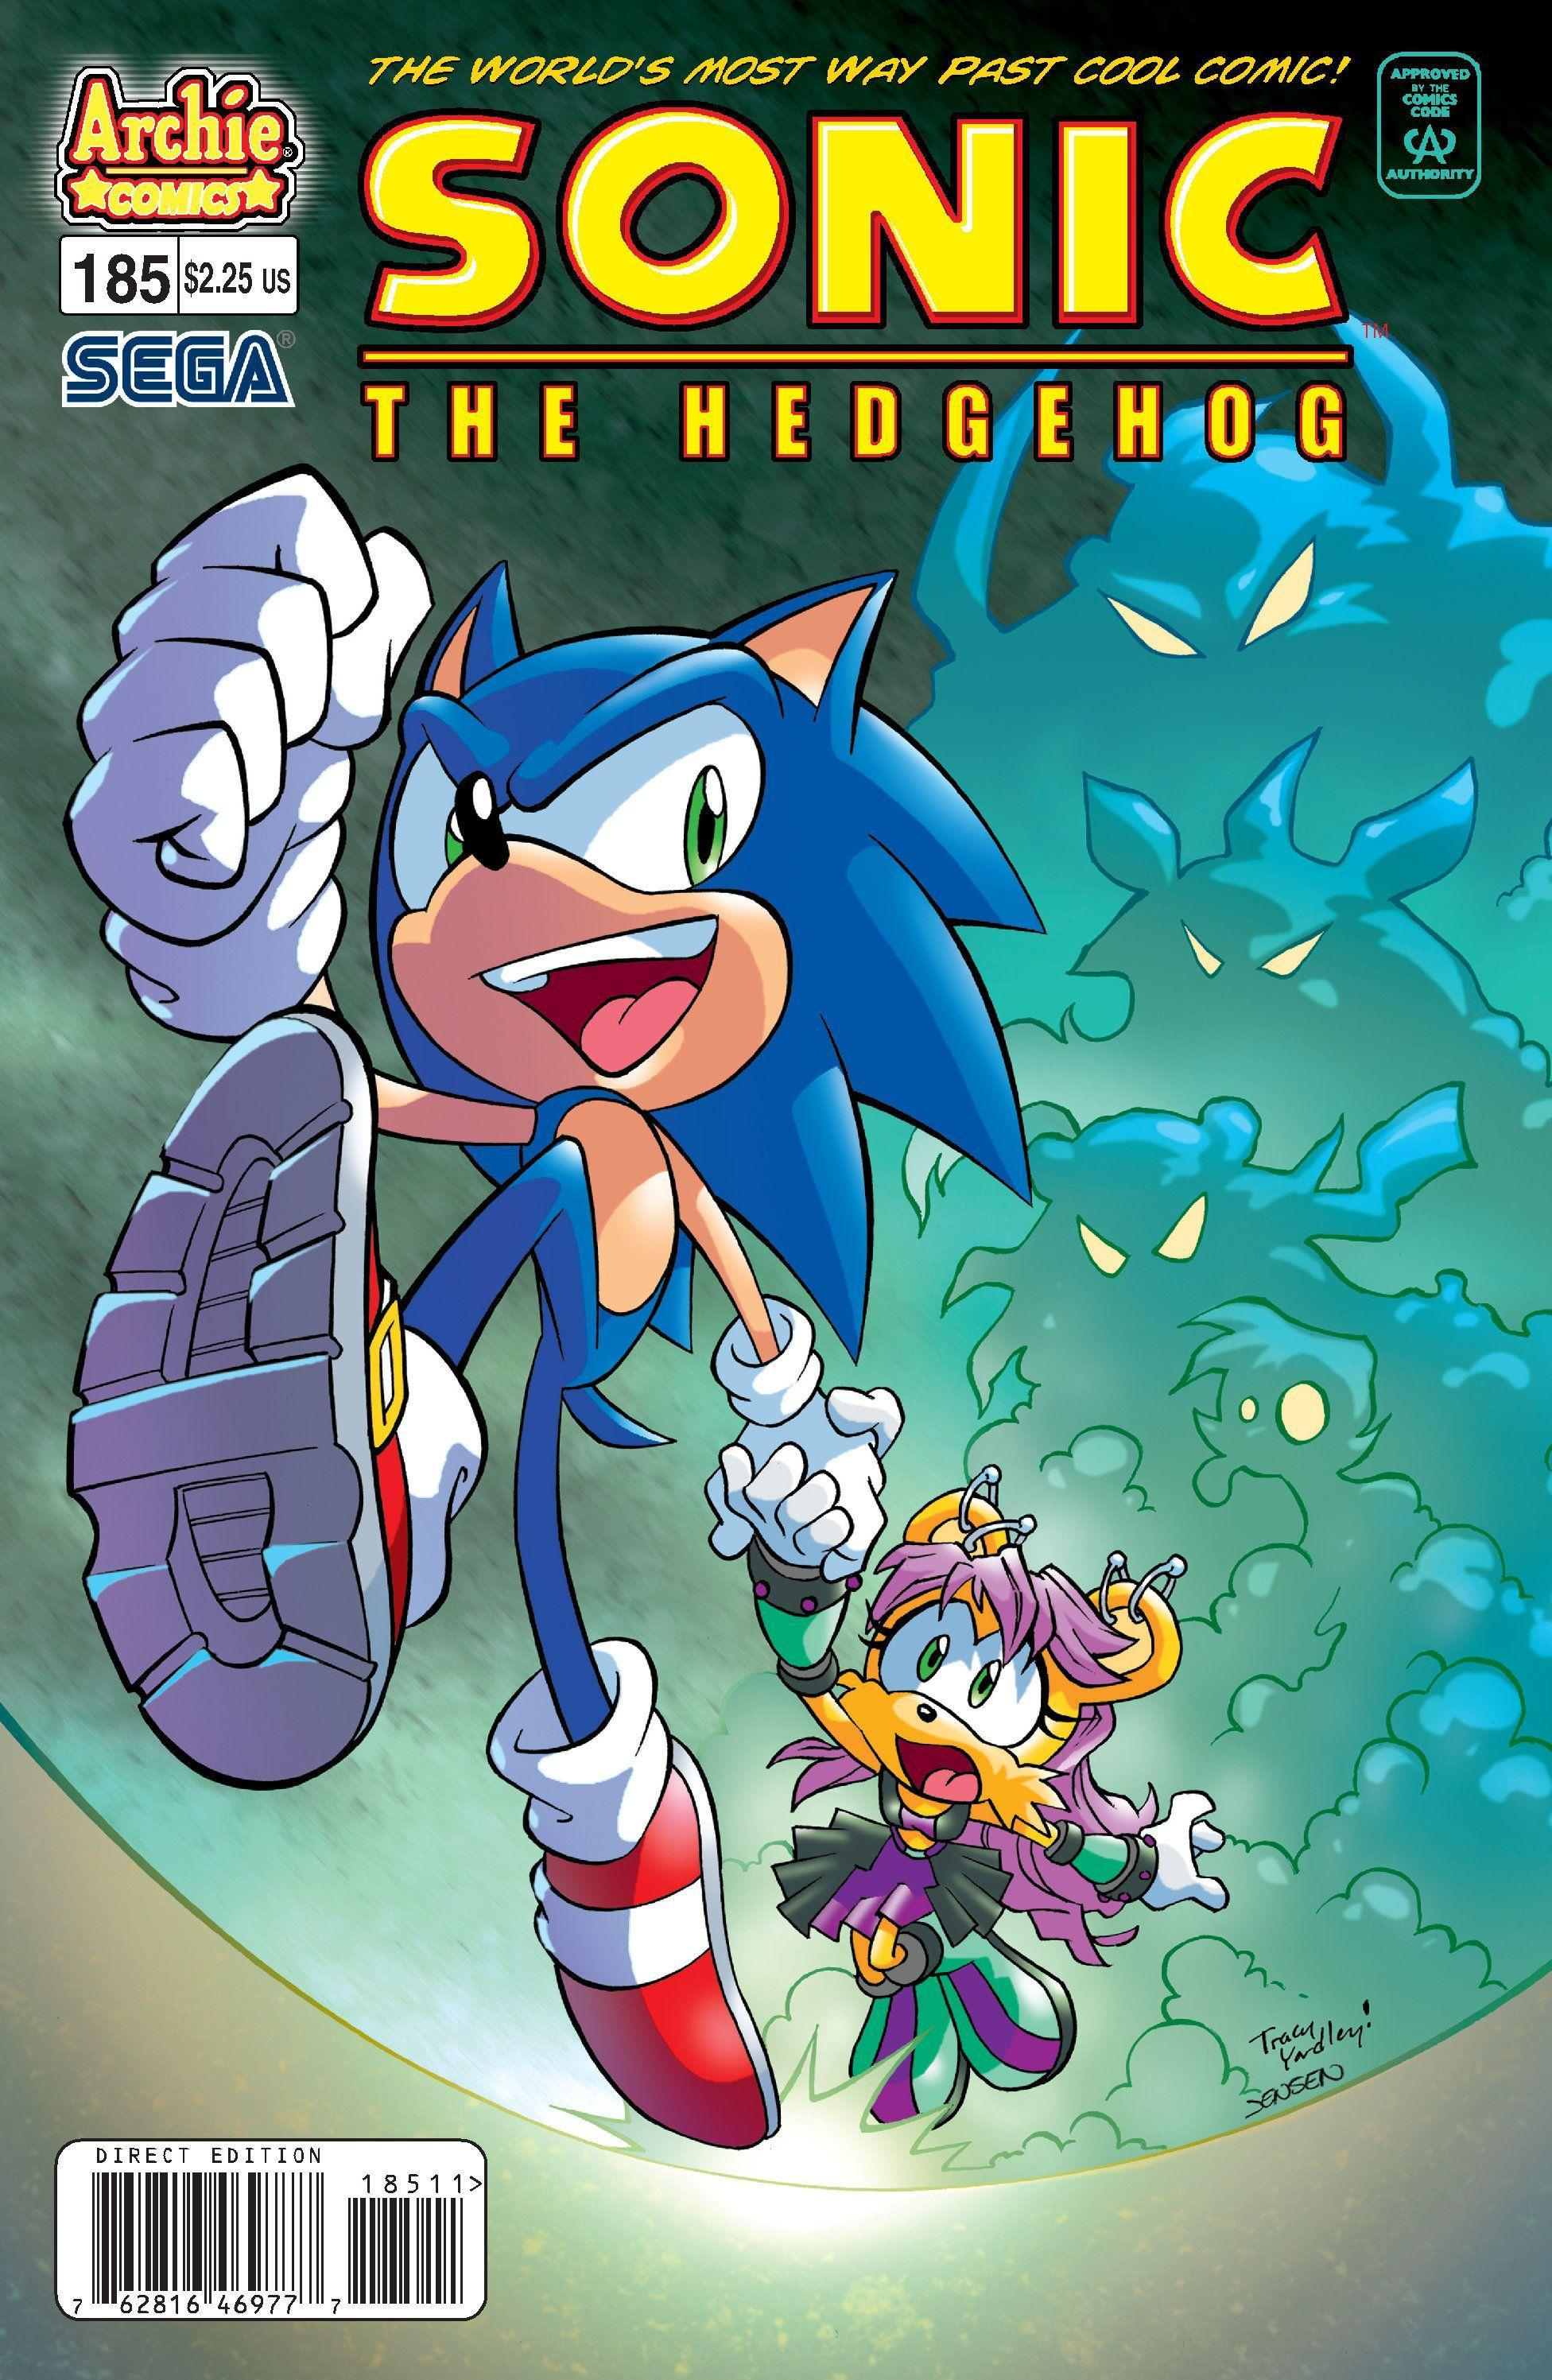 Archie Sonic Universe Issue 8 | Sonic News Network